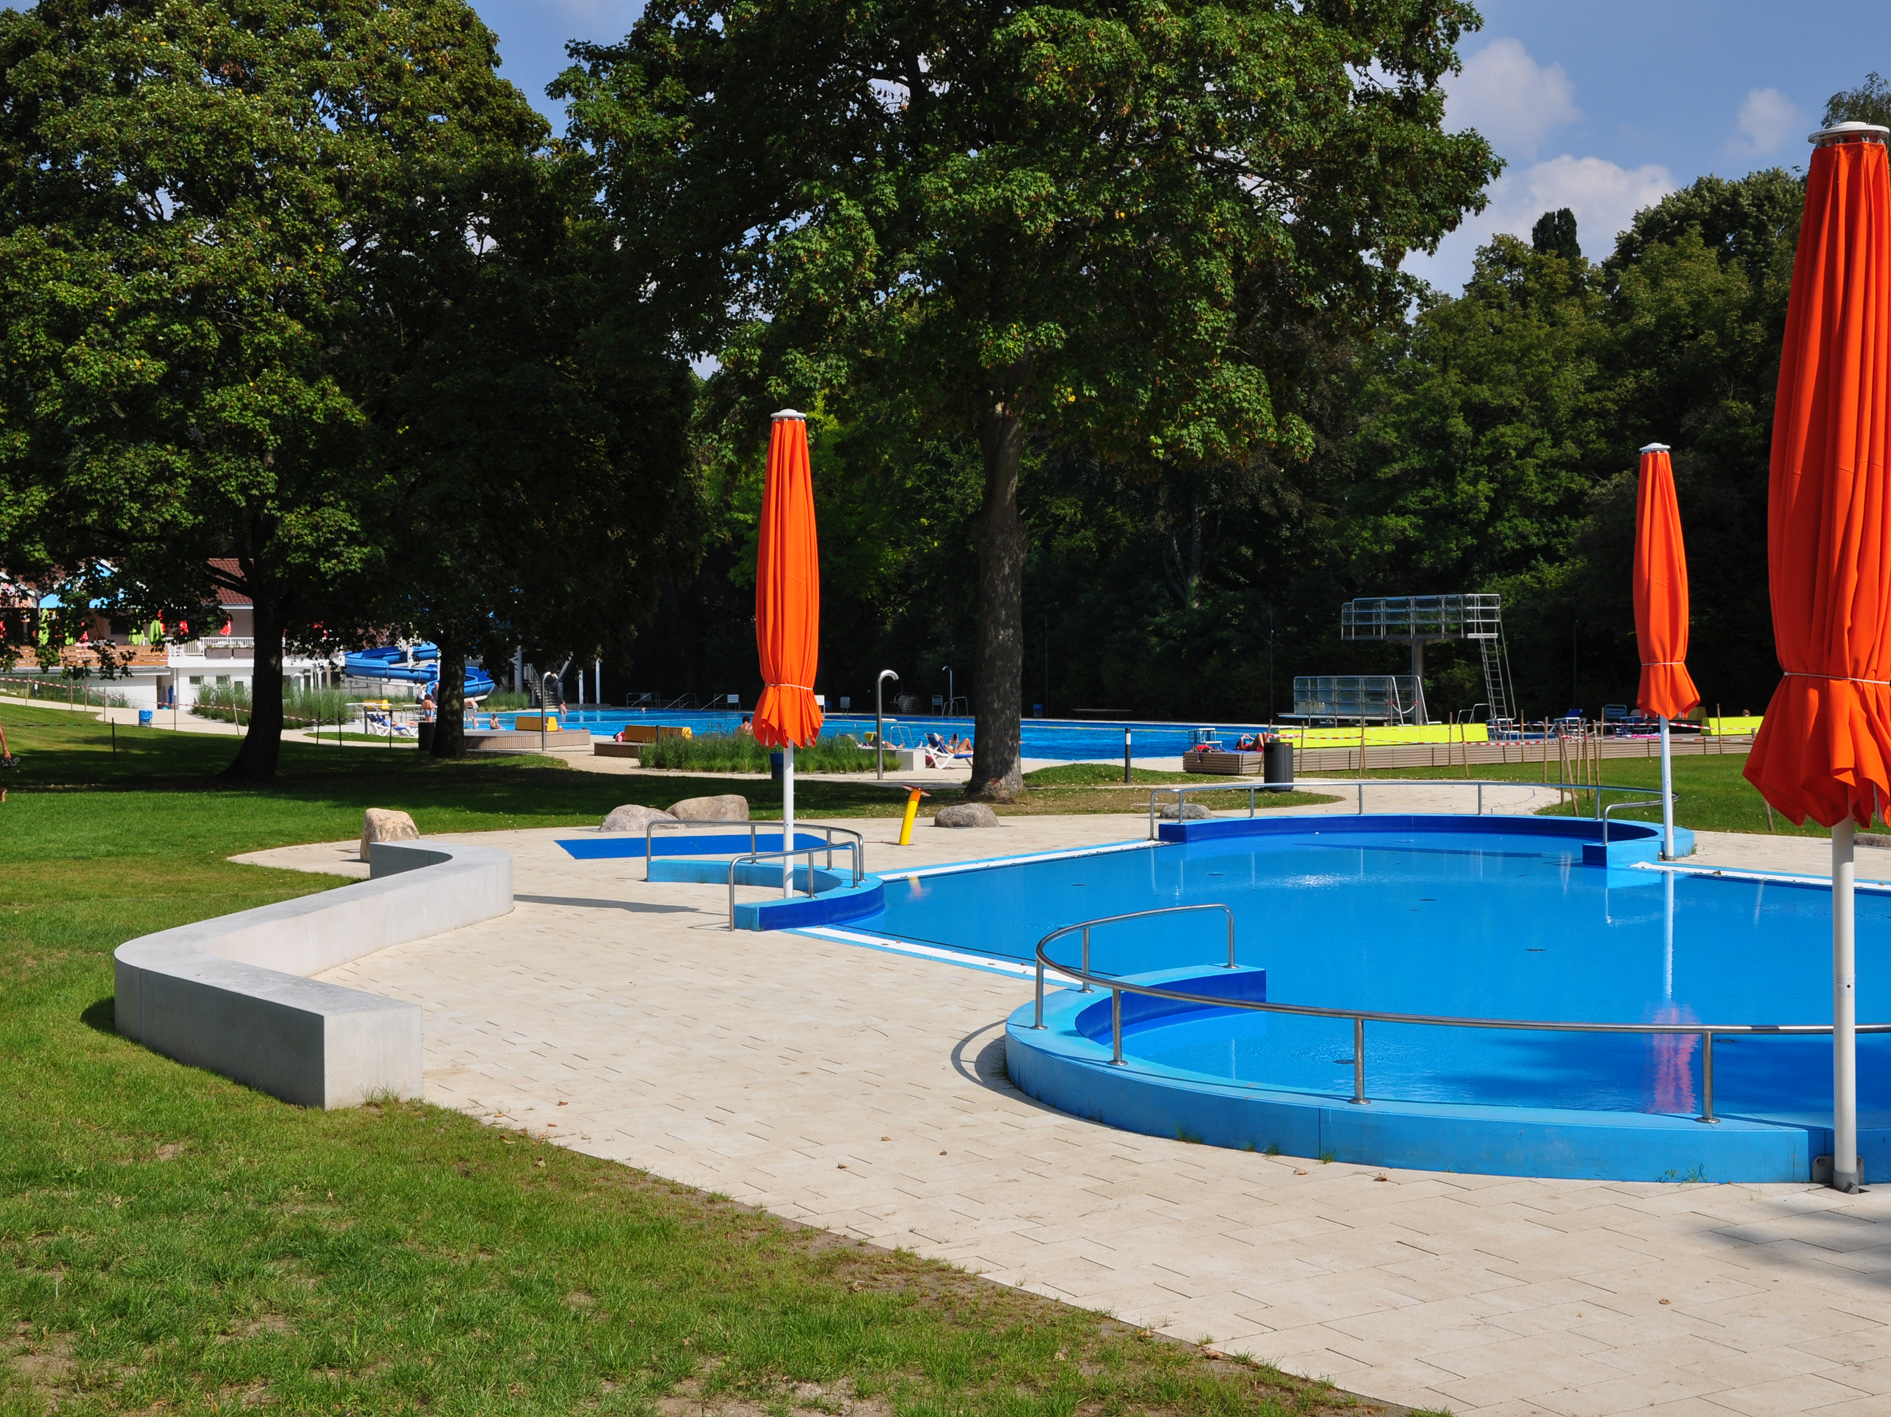 1511_Freibad_Bad_Salzdetfurth_7.jpg